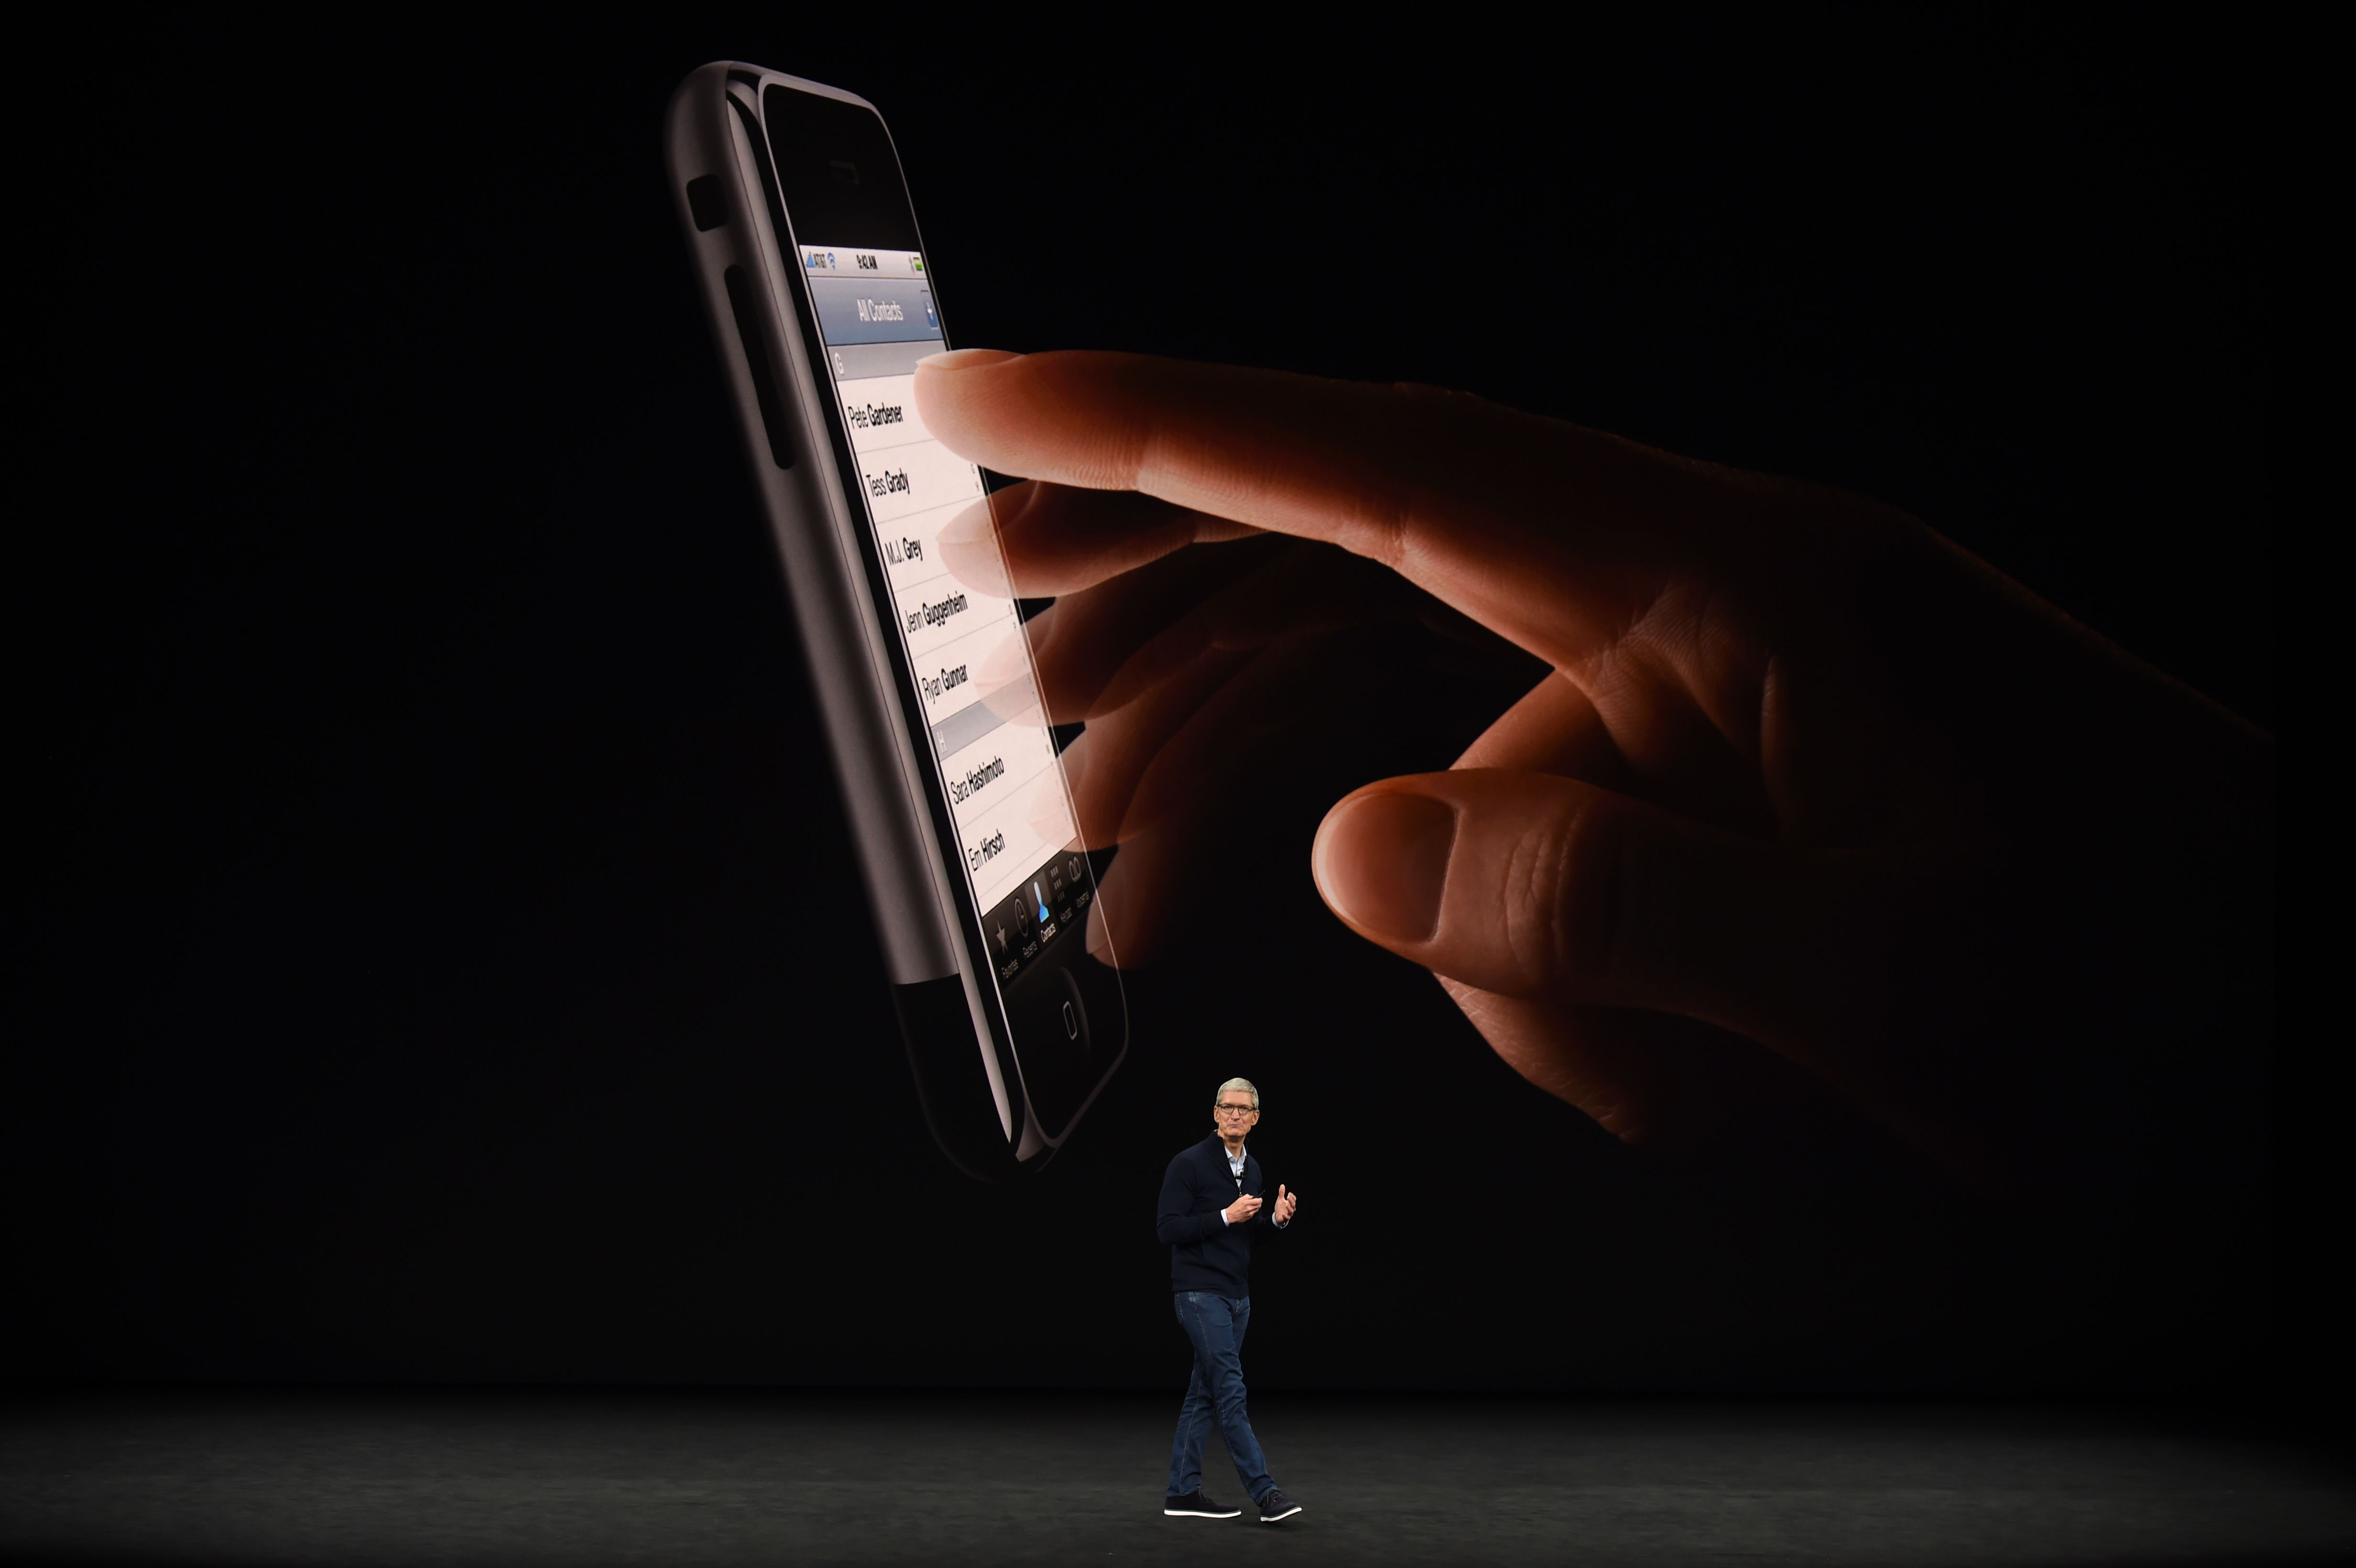 Apple CEO Tim Cook speaks about the new iPhone 8 during a media event at Apple's new headquarters in Cupertino, Calif., on Sept. 12, 2017. (JOSH EDELSON/AFP/Getty Images)